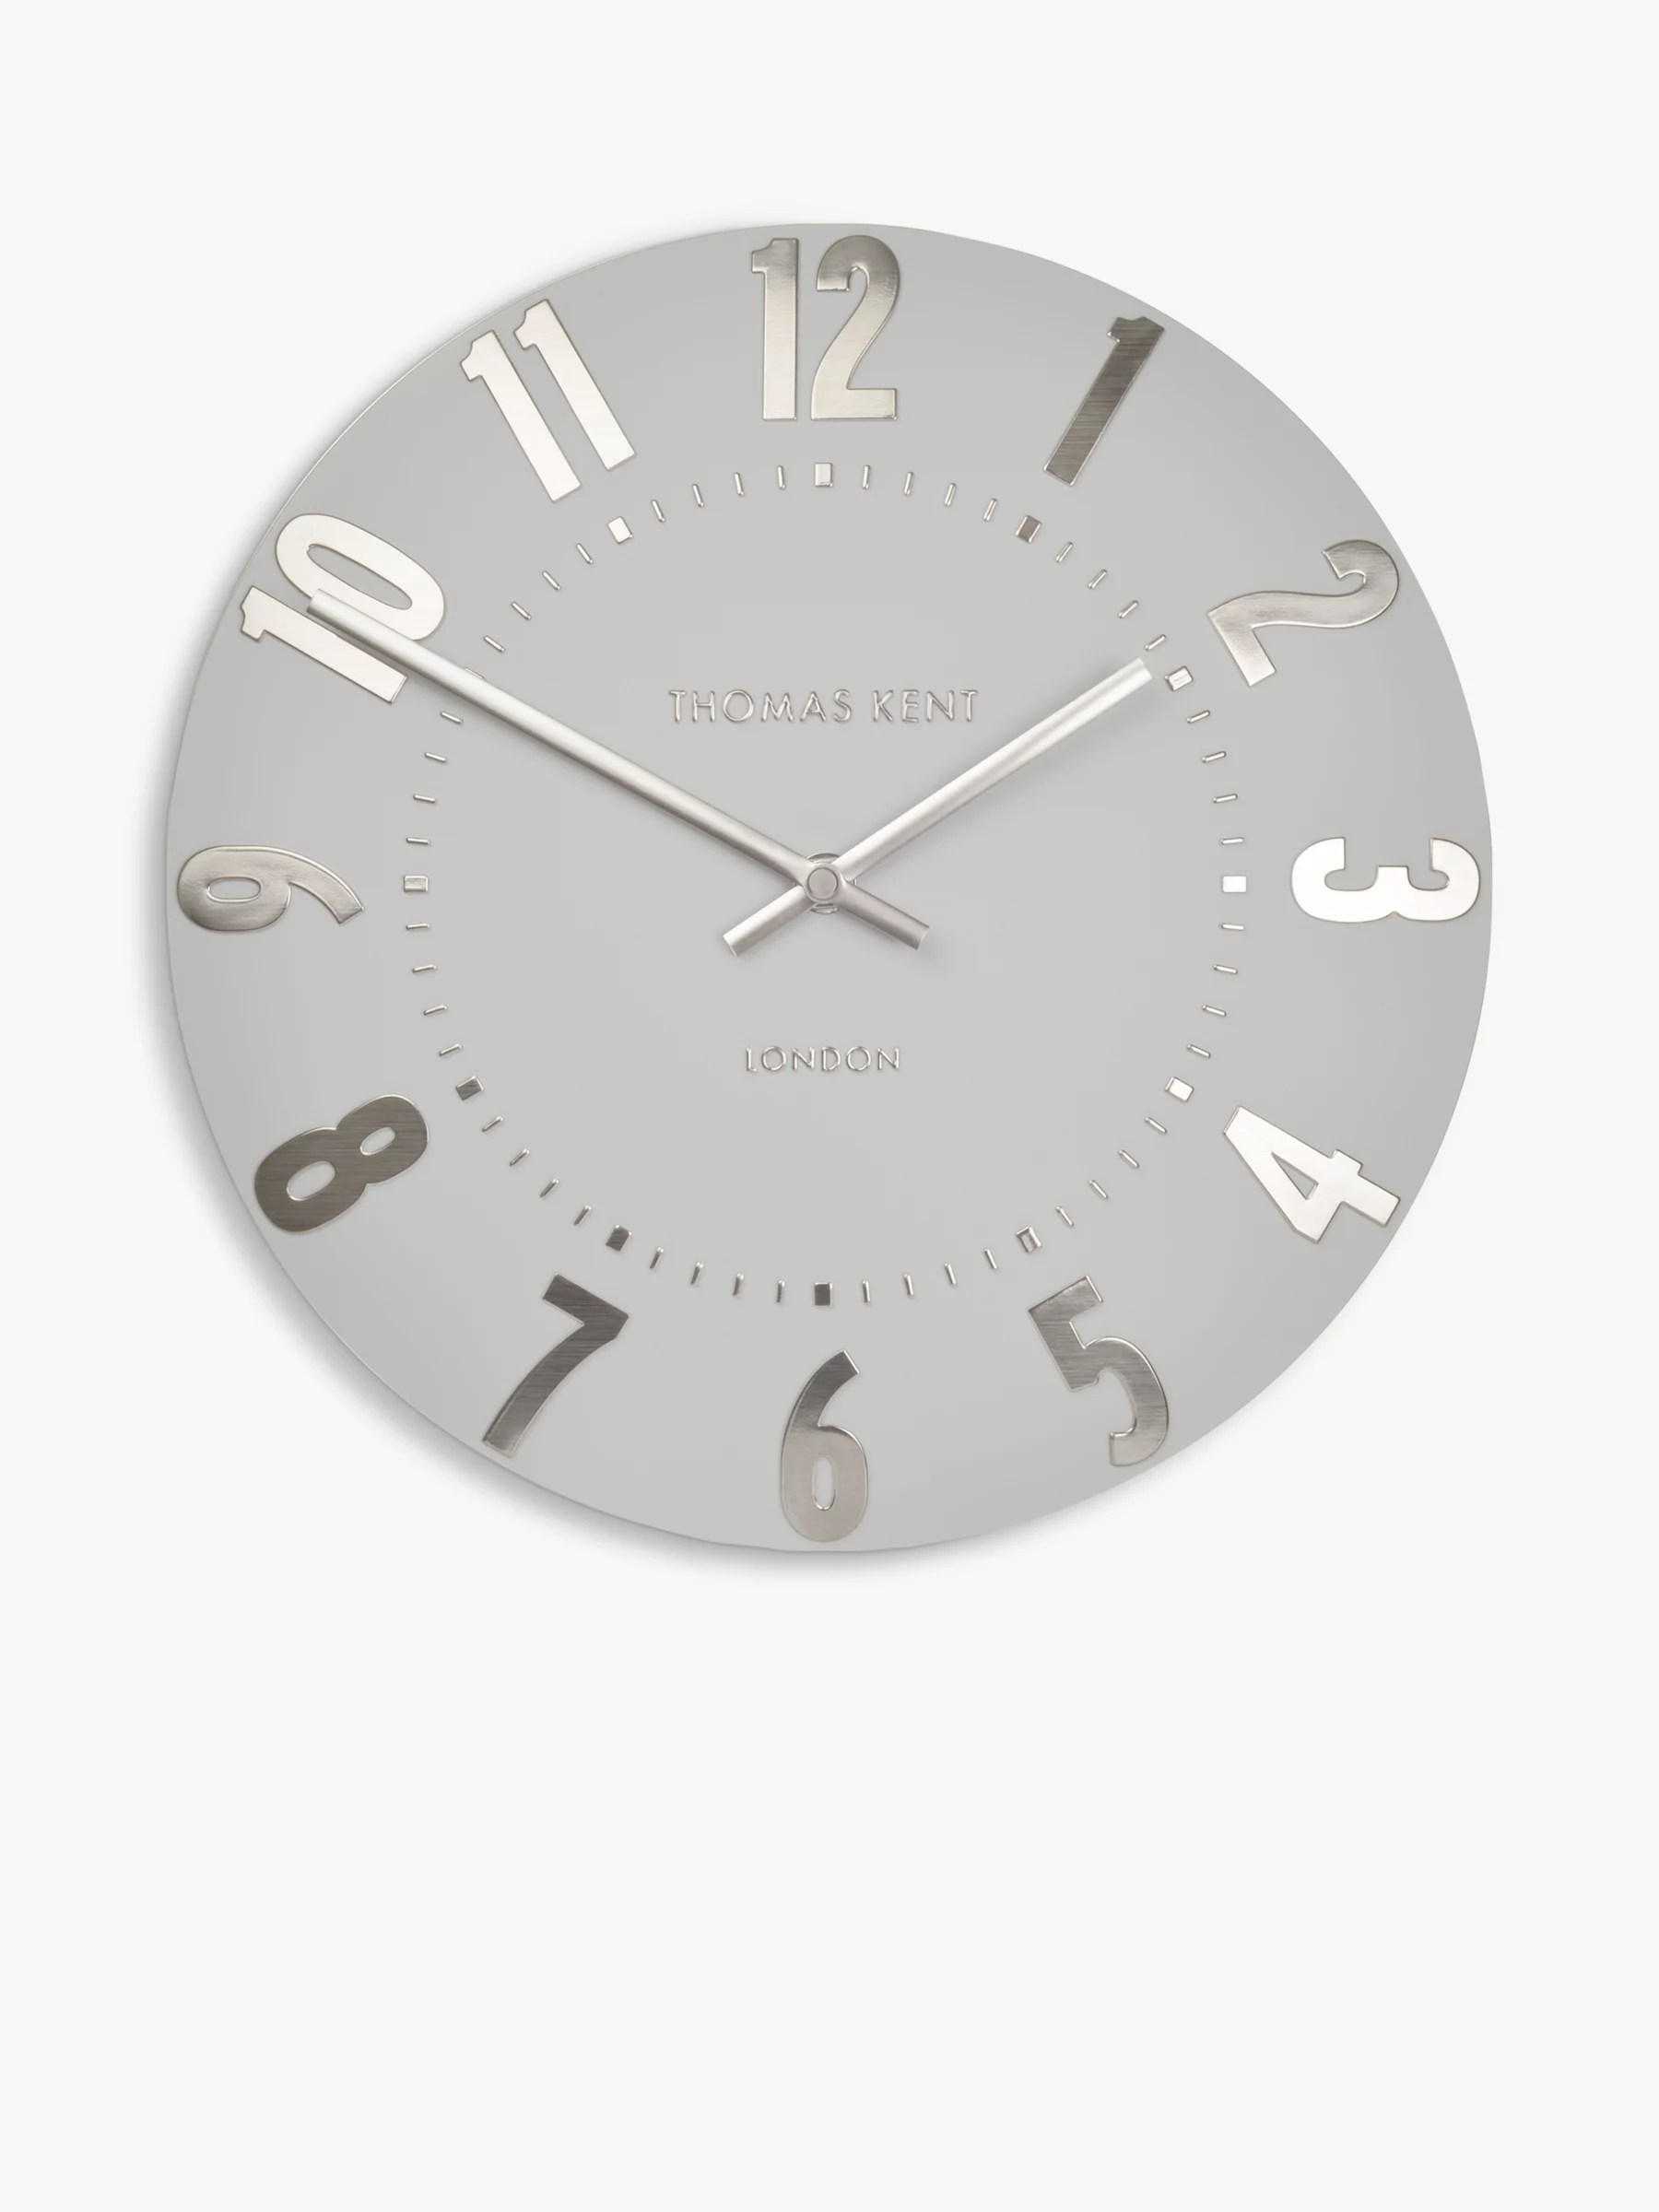 kitchen wall clocks appliance packages lowes silver john lewis partners thomas kent mulberry clock dia 30cm cloud